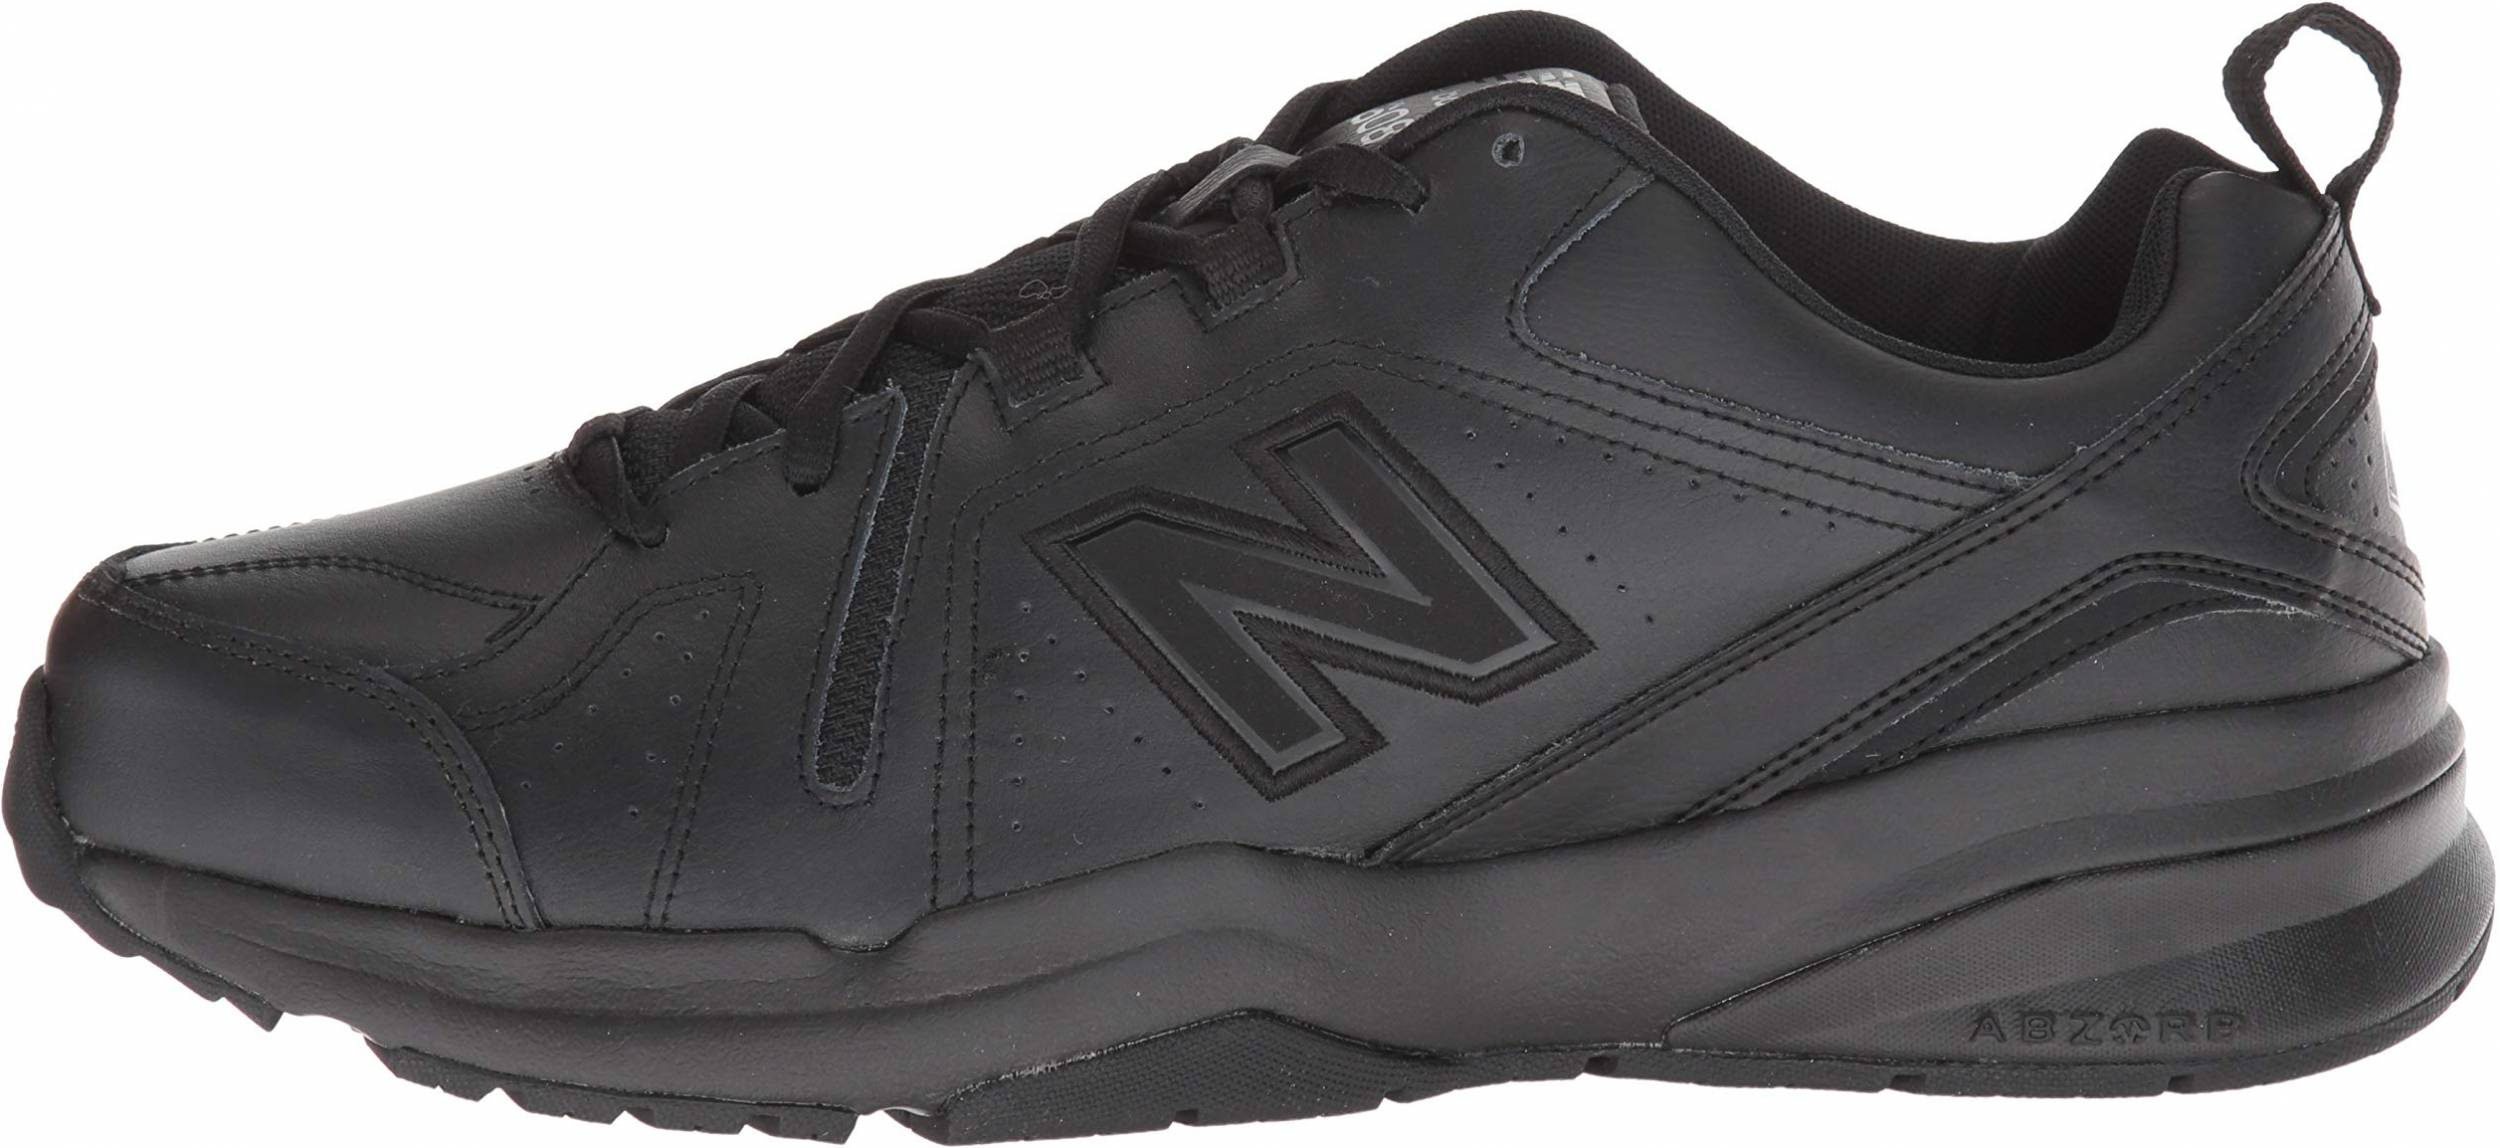 Only $30 + Review of New Balance 608 v5